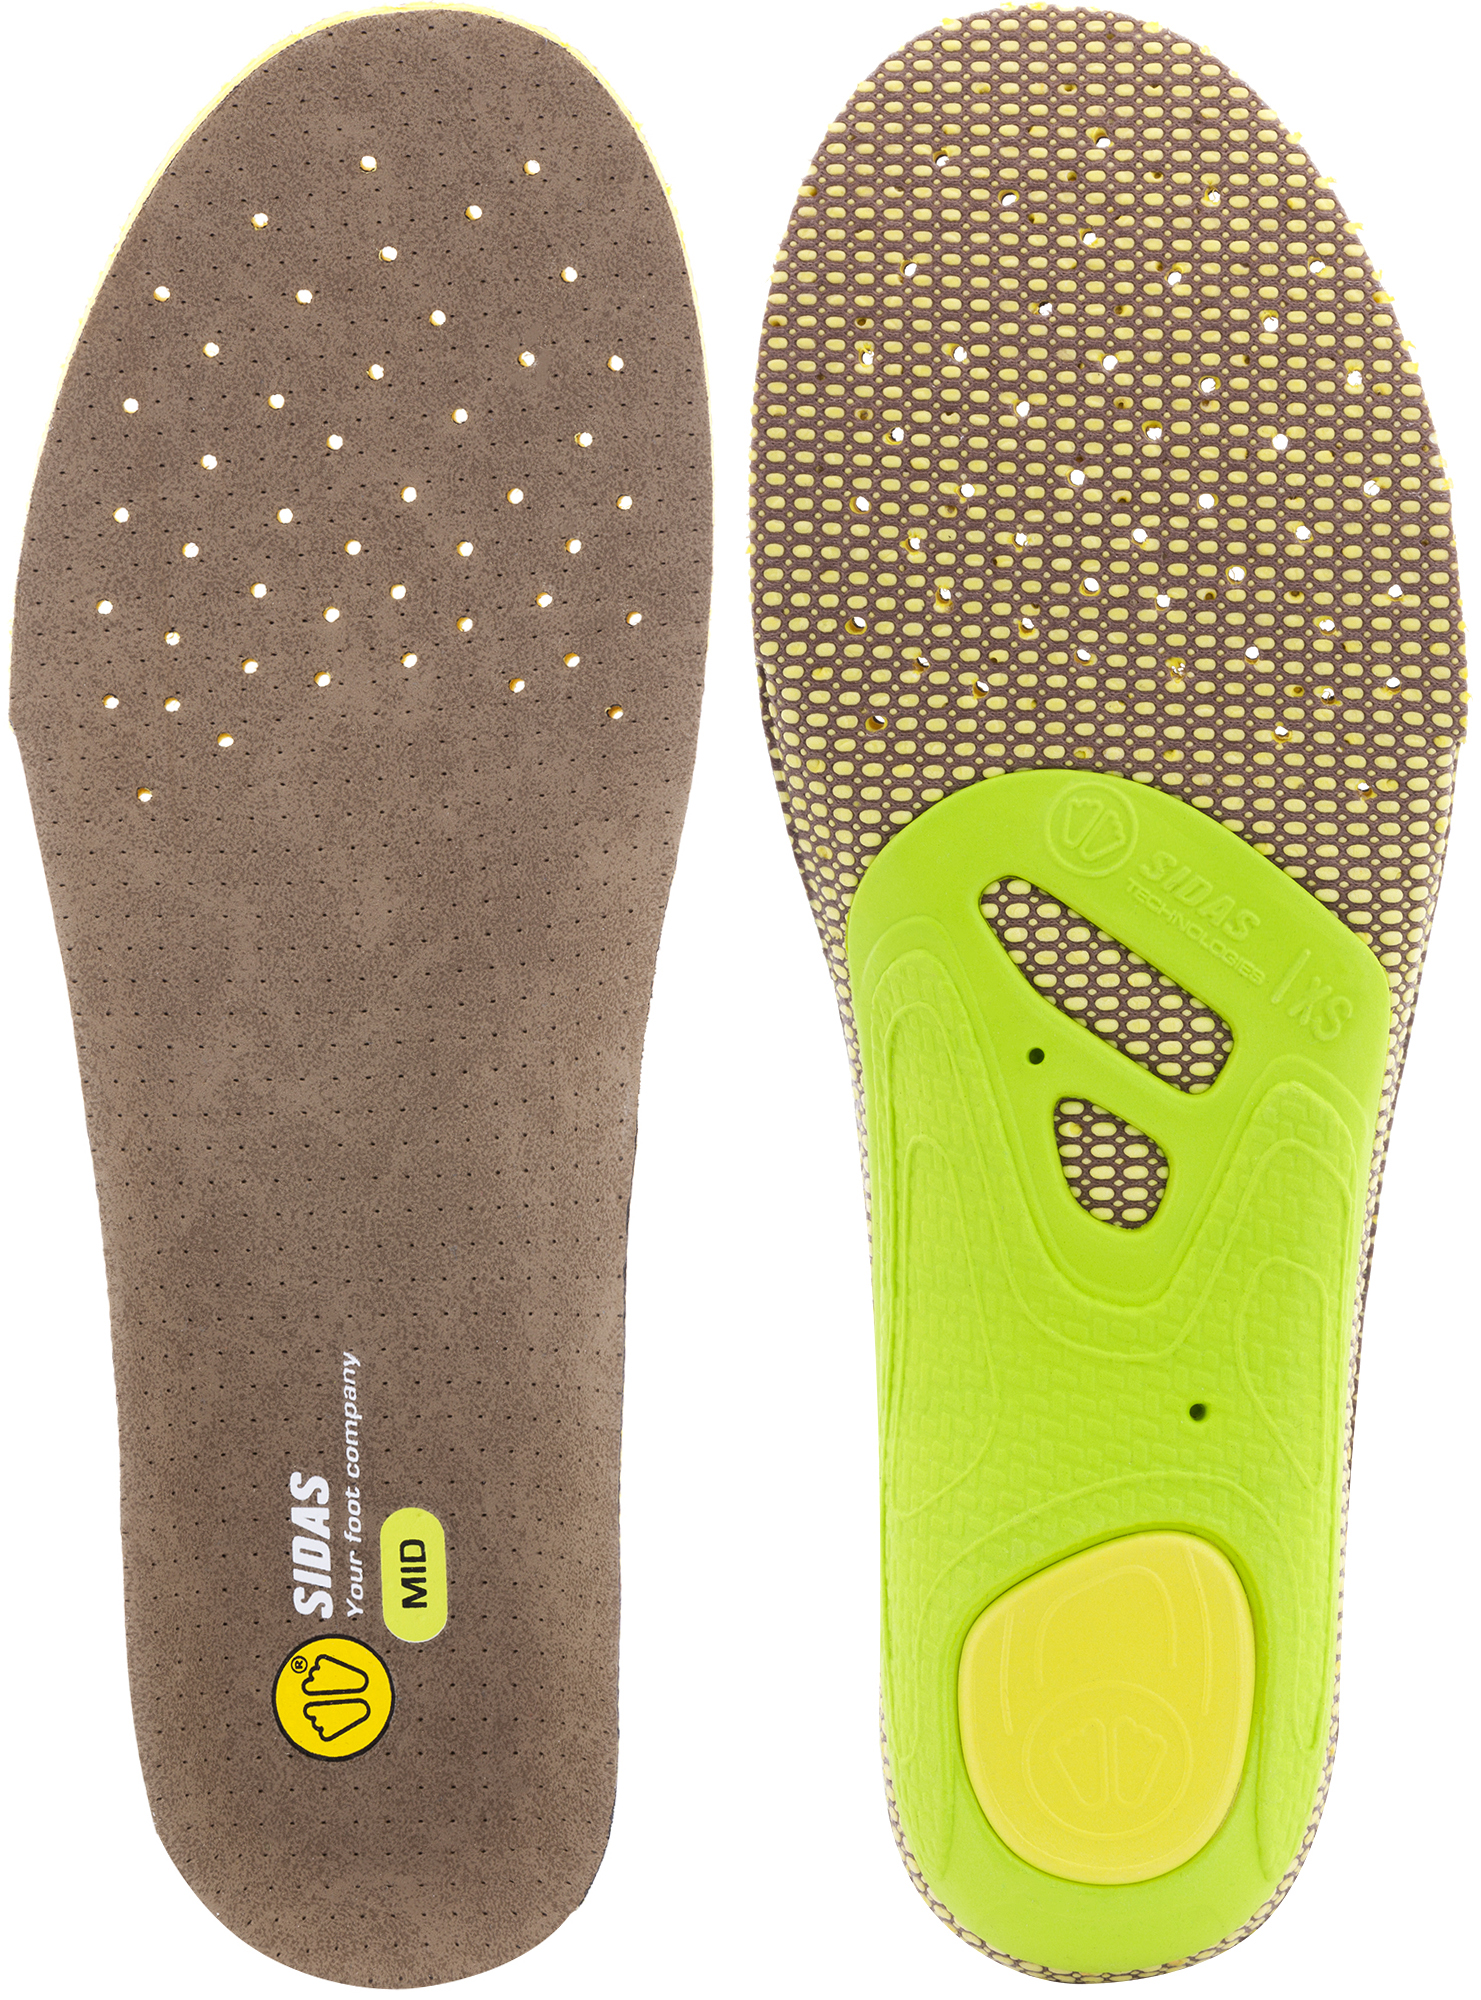 Sidas 3-feet high insoles, blue, x-small (mens-3 to 4/womens-4 to 5)